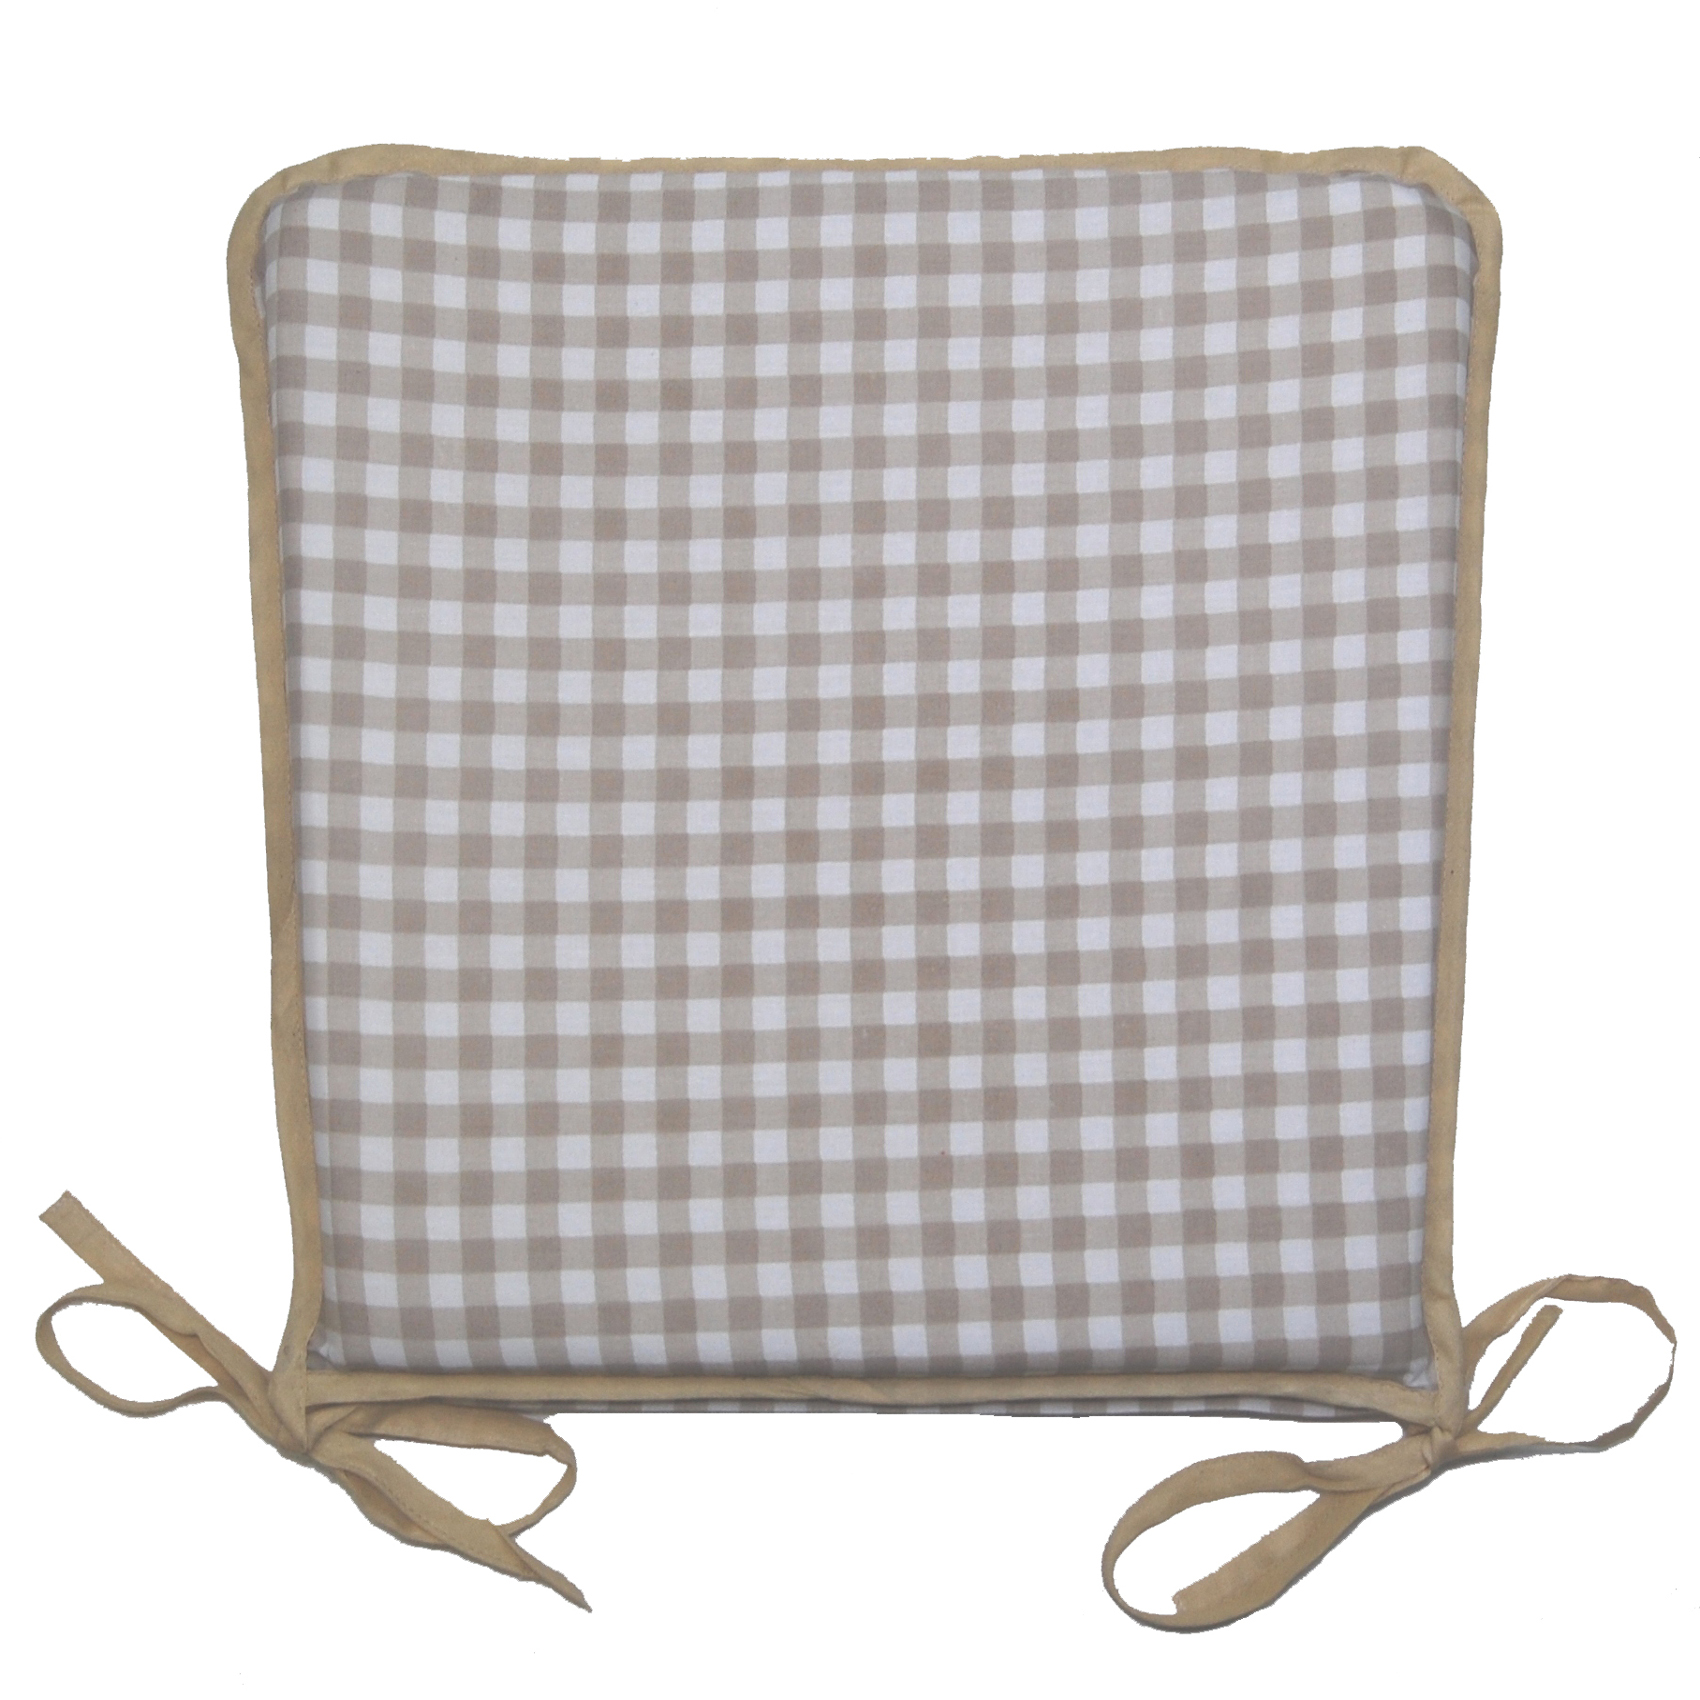 Gingham Chair Garden Seat Pad 100 Cotton Gingham Check Kitchen Dining